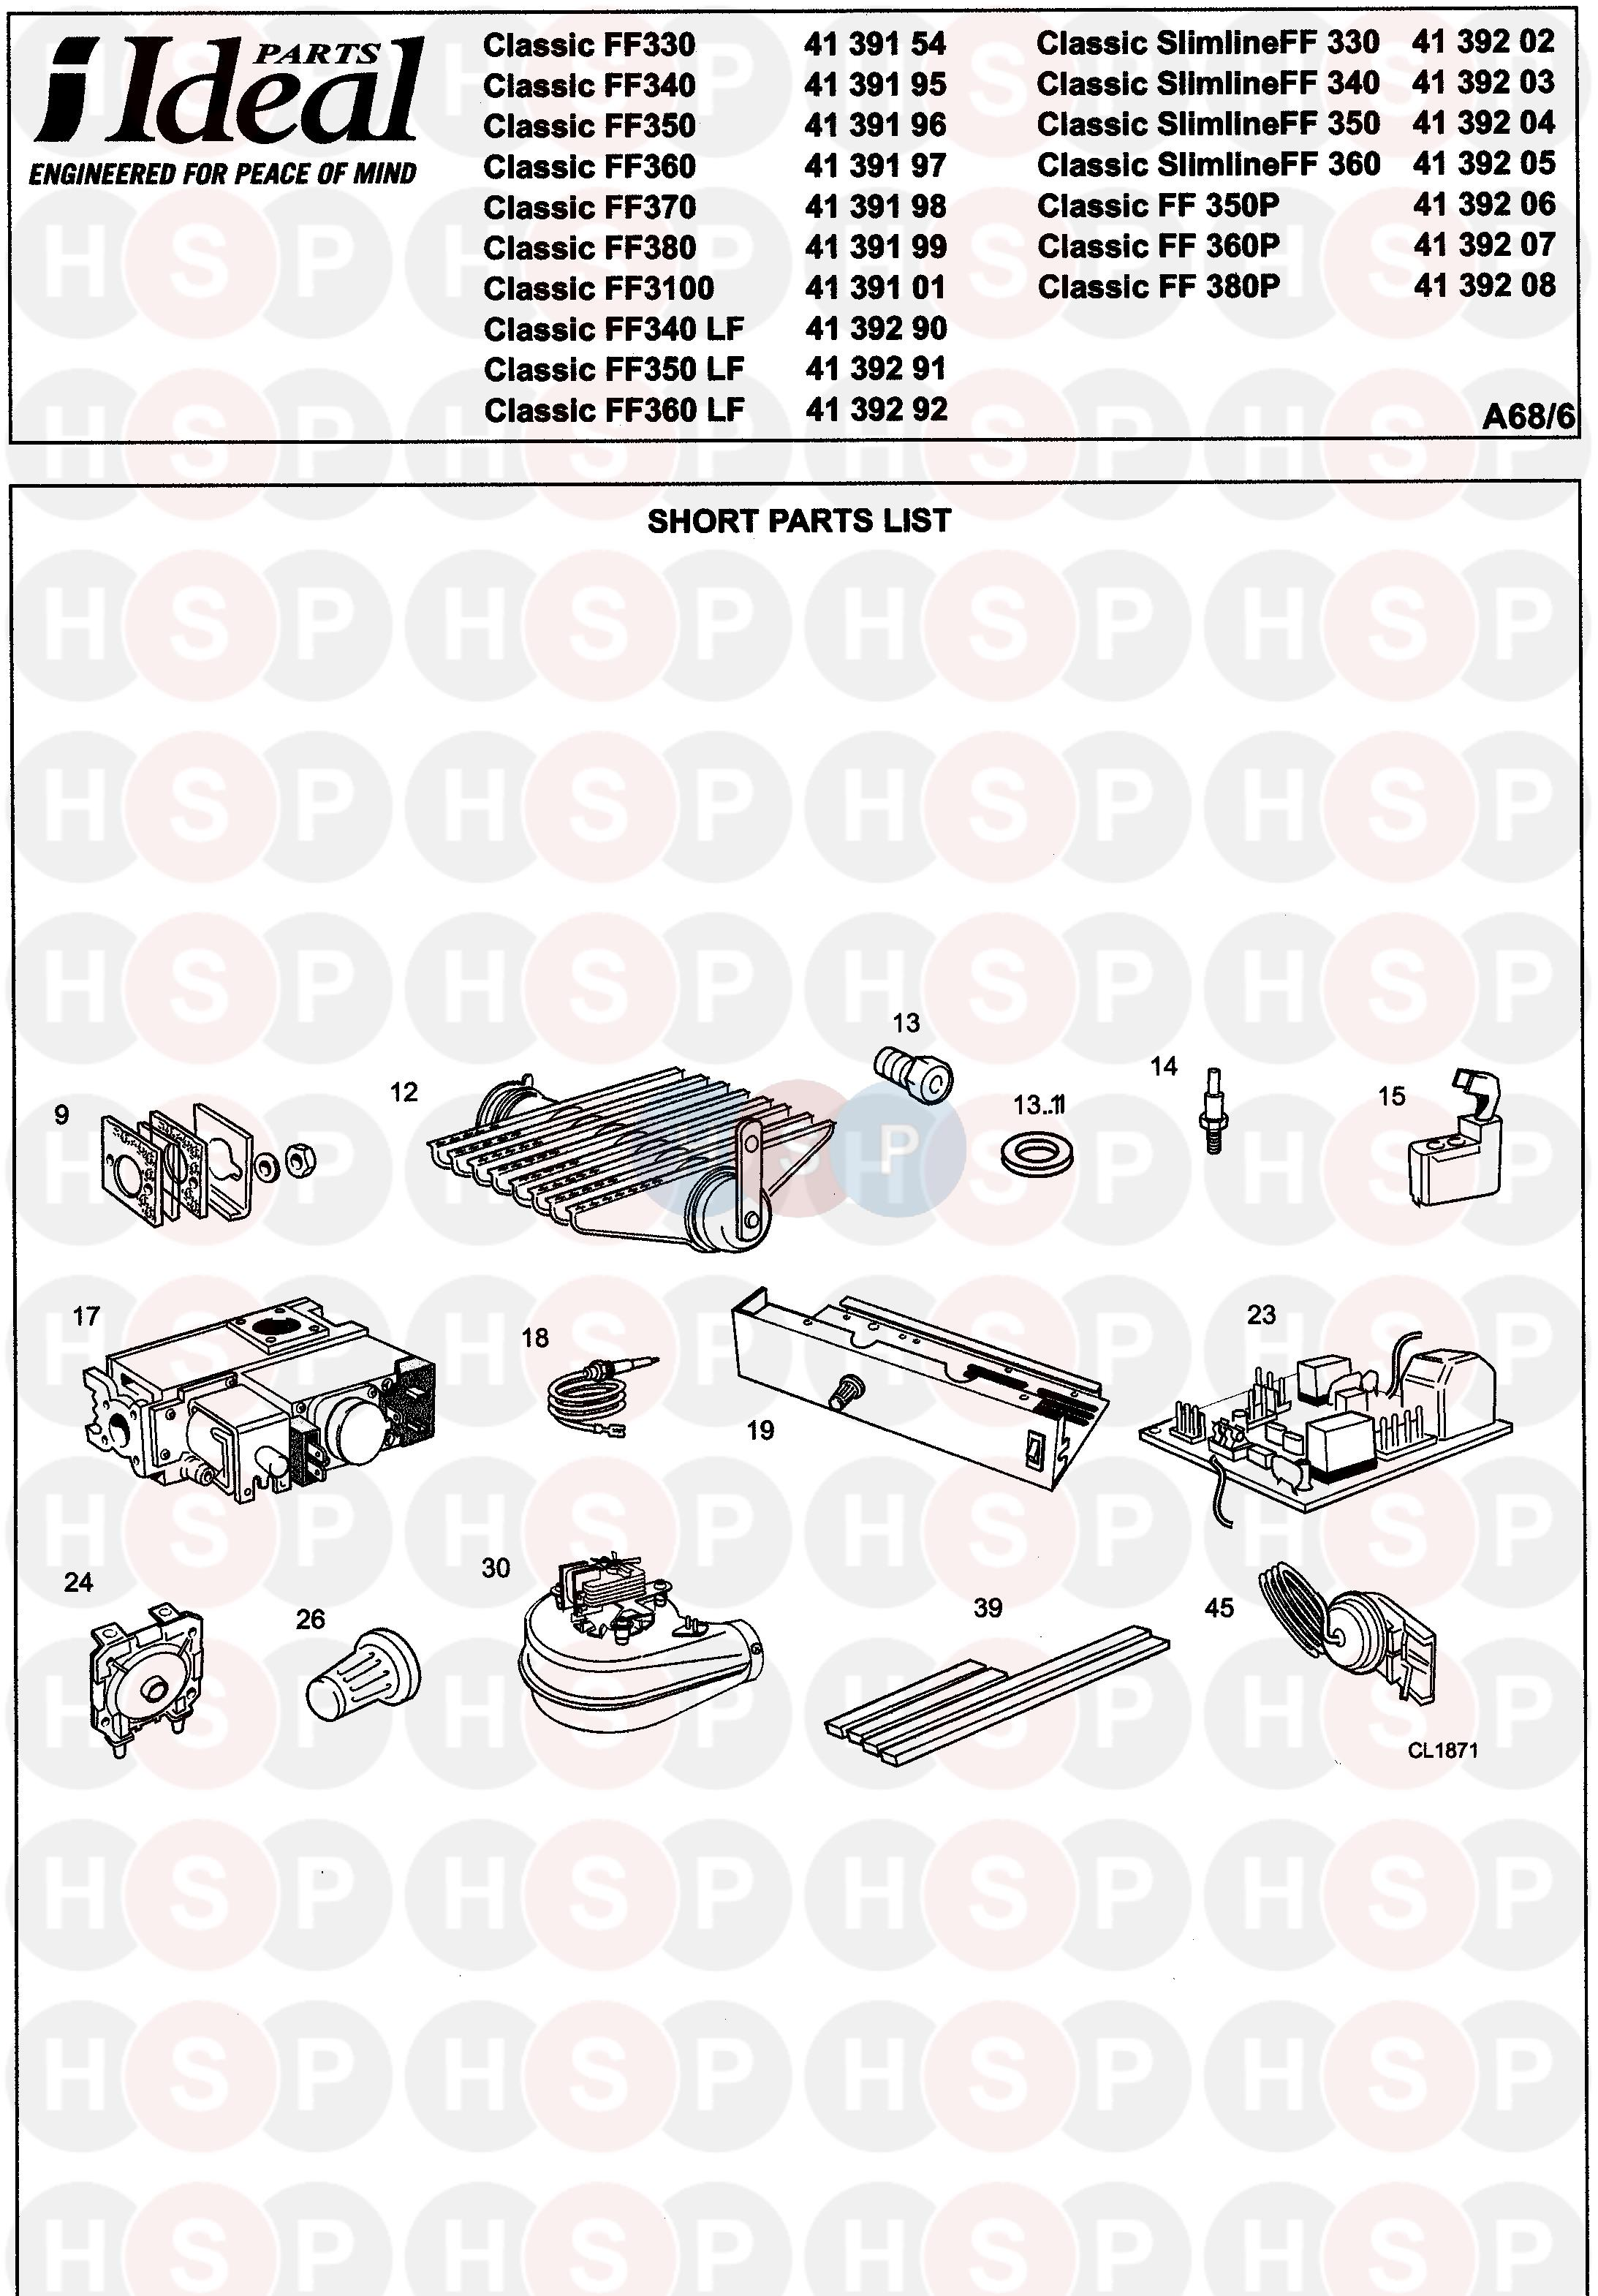 Ideal CLASSIC FF370 Appliance Diagram (FIRST LINE SPARES